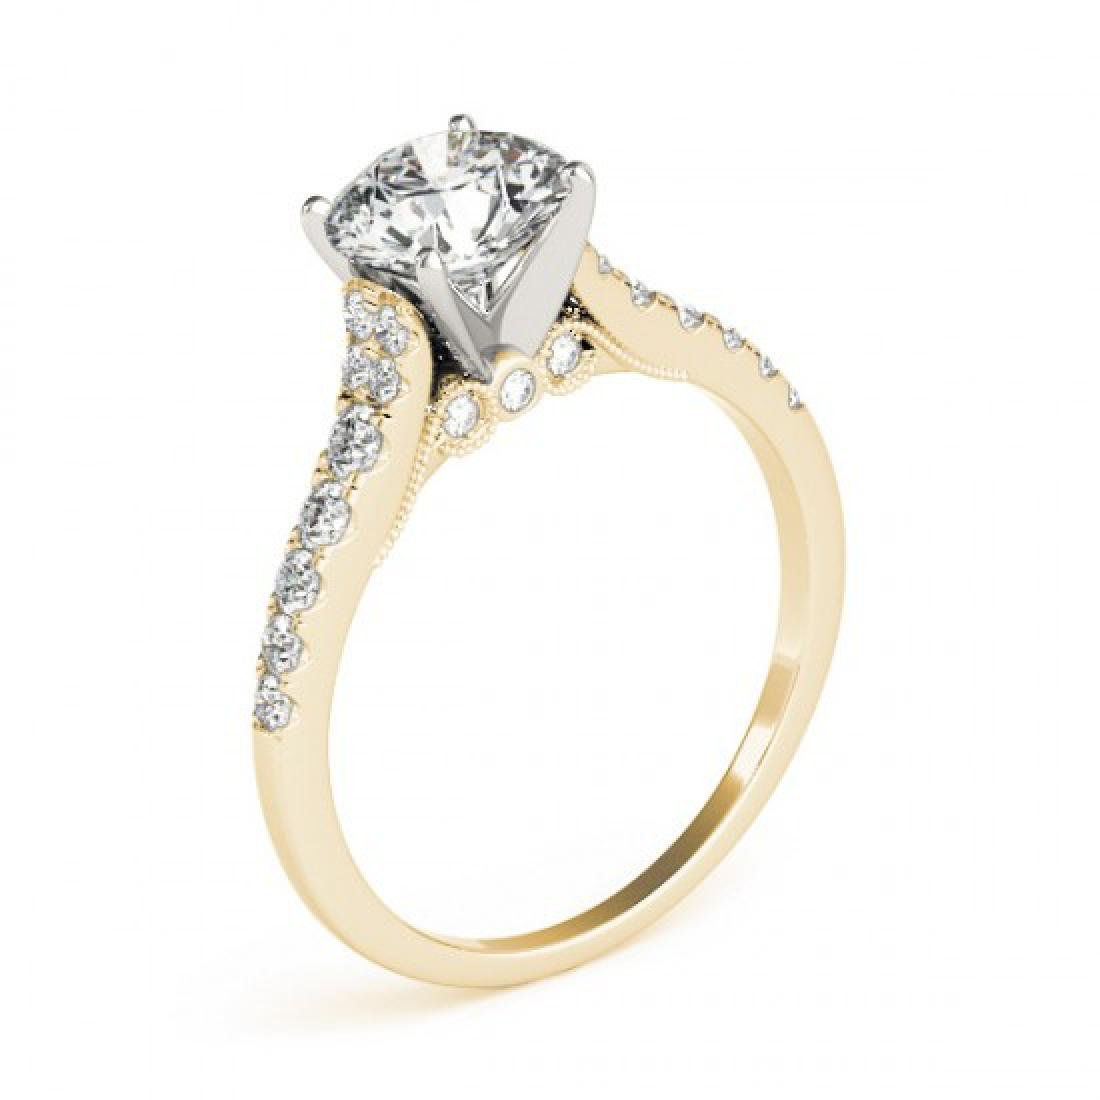 0.65 CTW Certified VS/SI Diamond Solitaire Ring 14K - 3